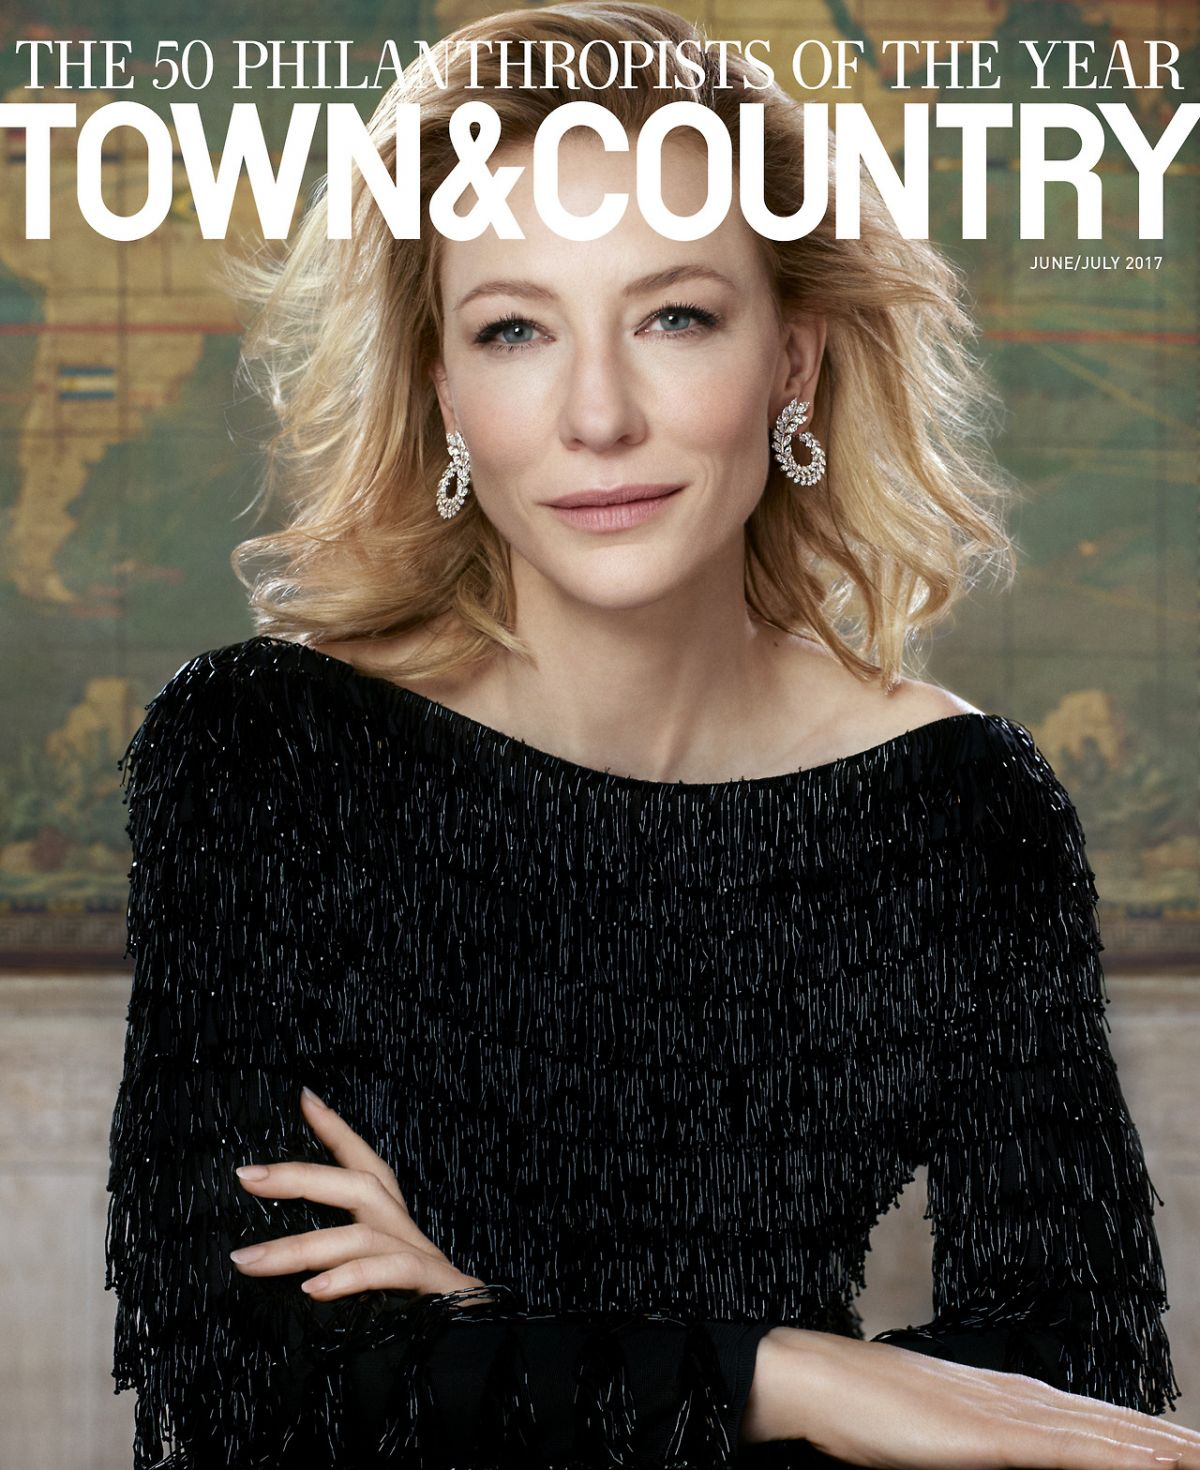 CATE BLANCHETT for Town & Country, June/July 2017